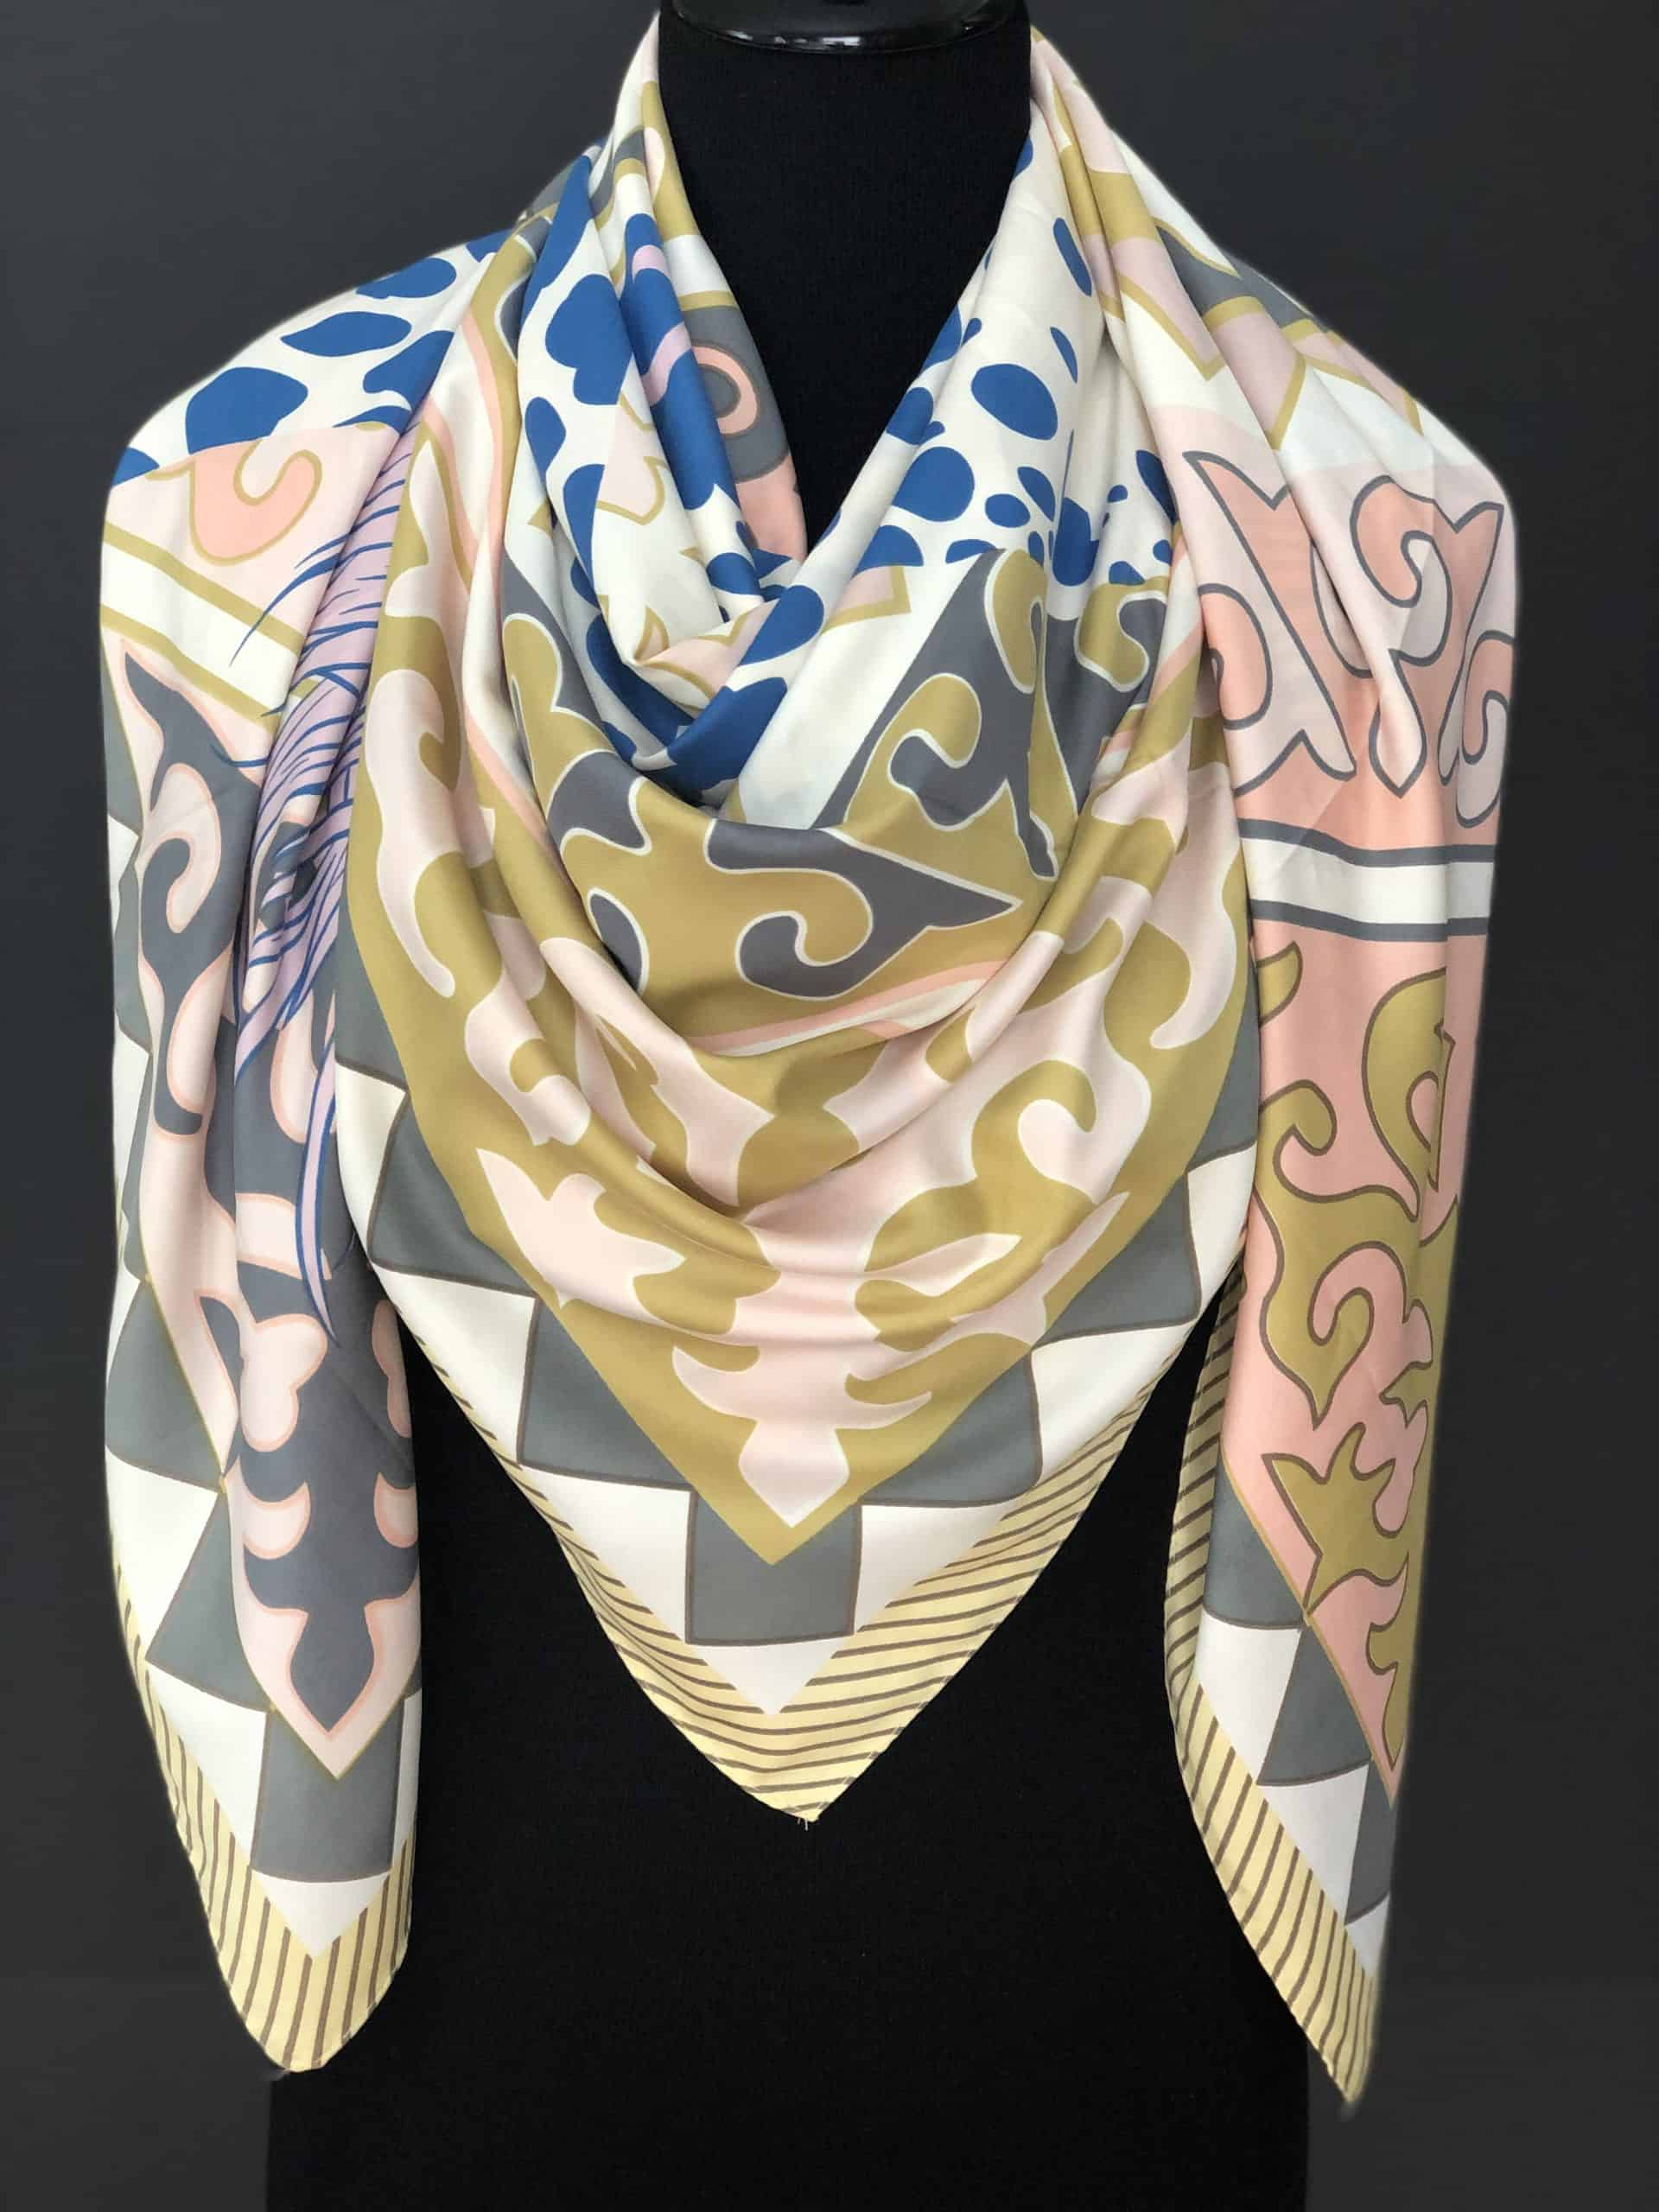 100% Thai Silk Scarf, by Cashmere and Pearls